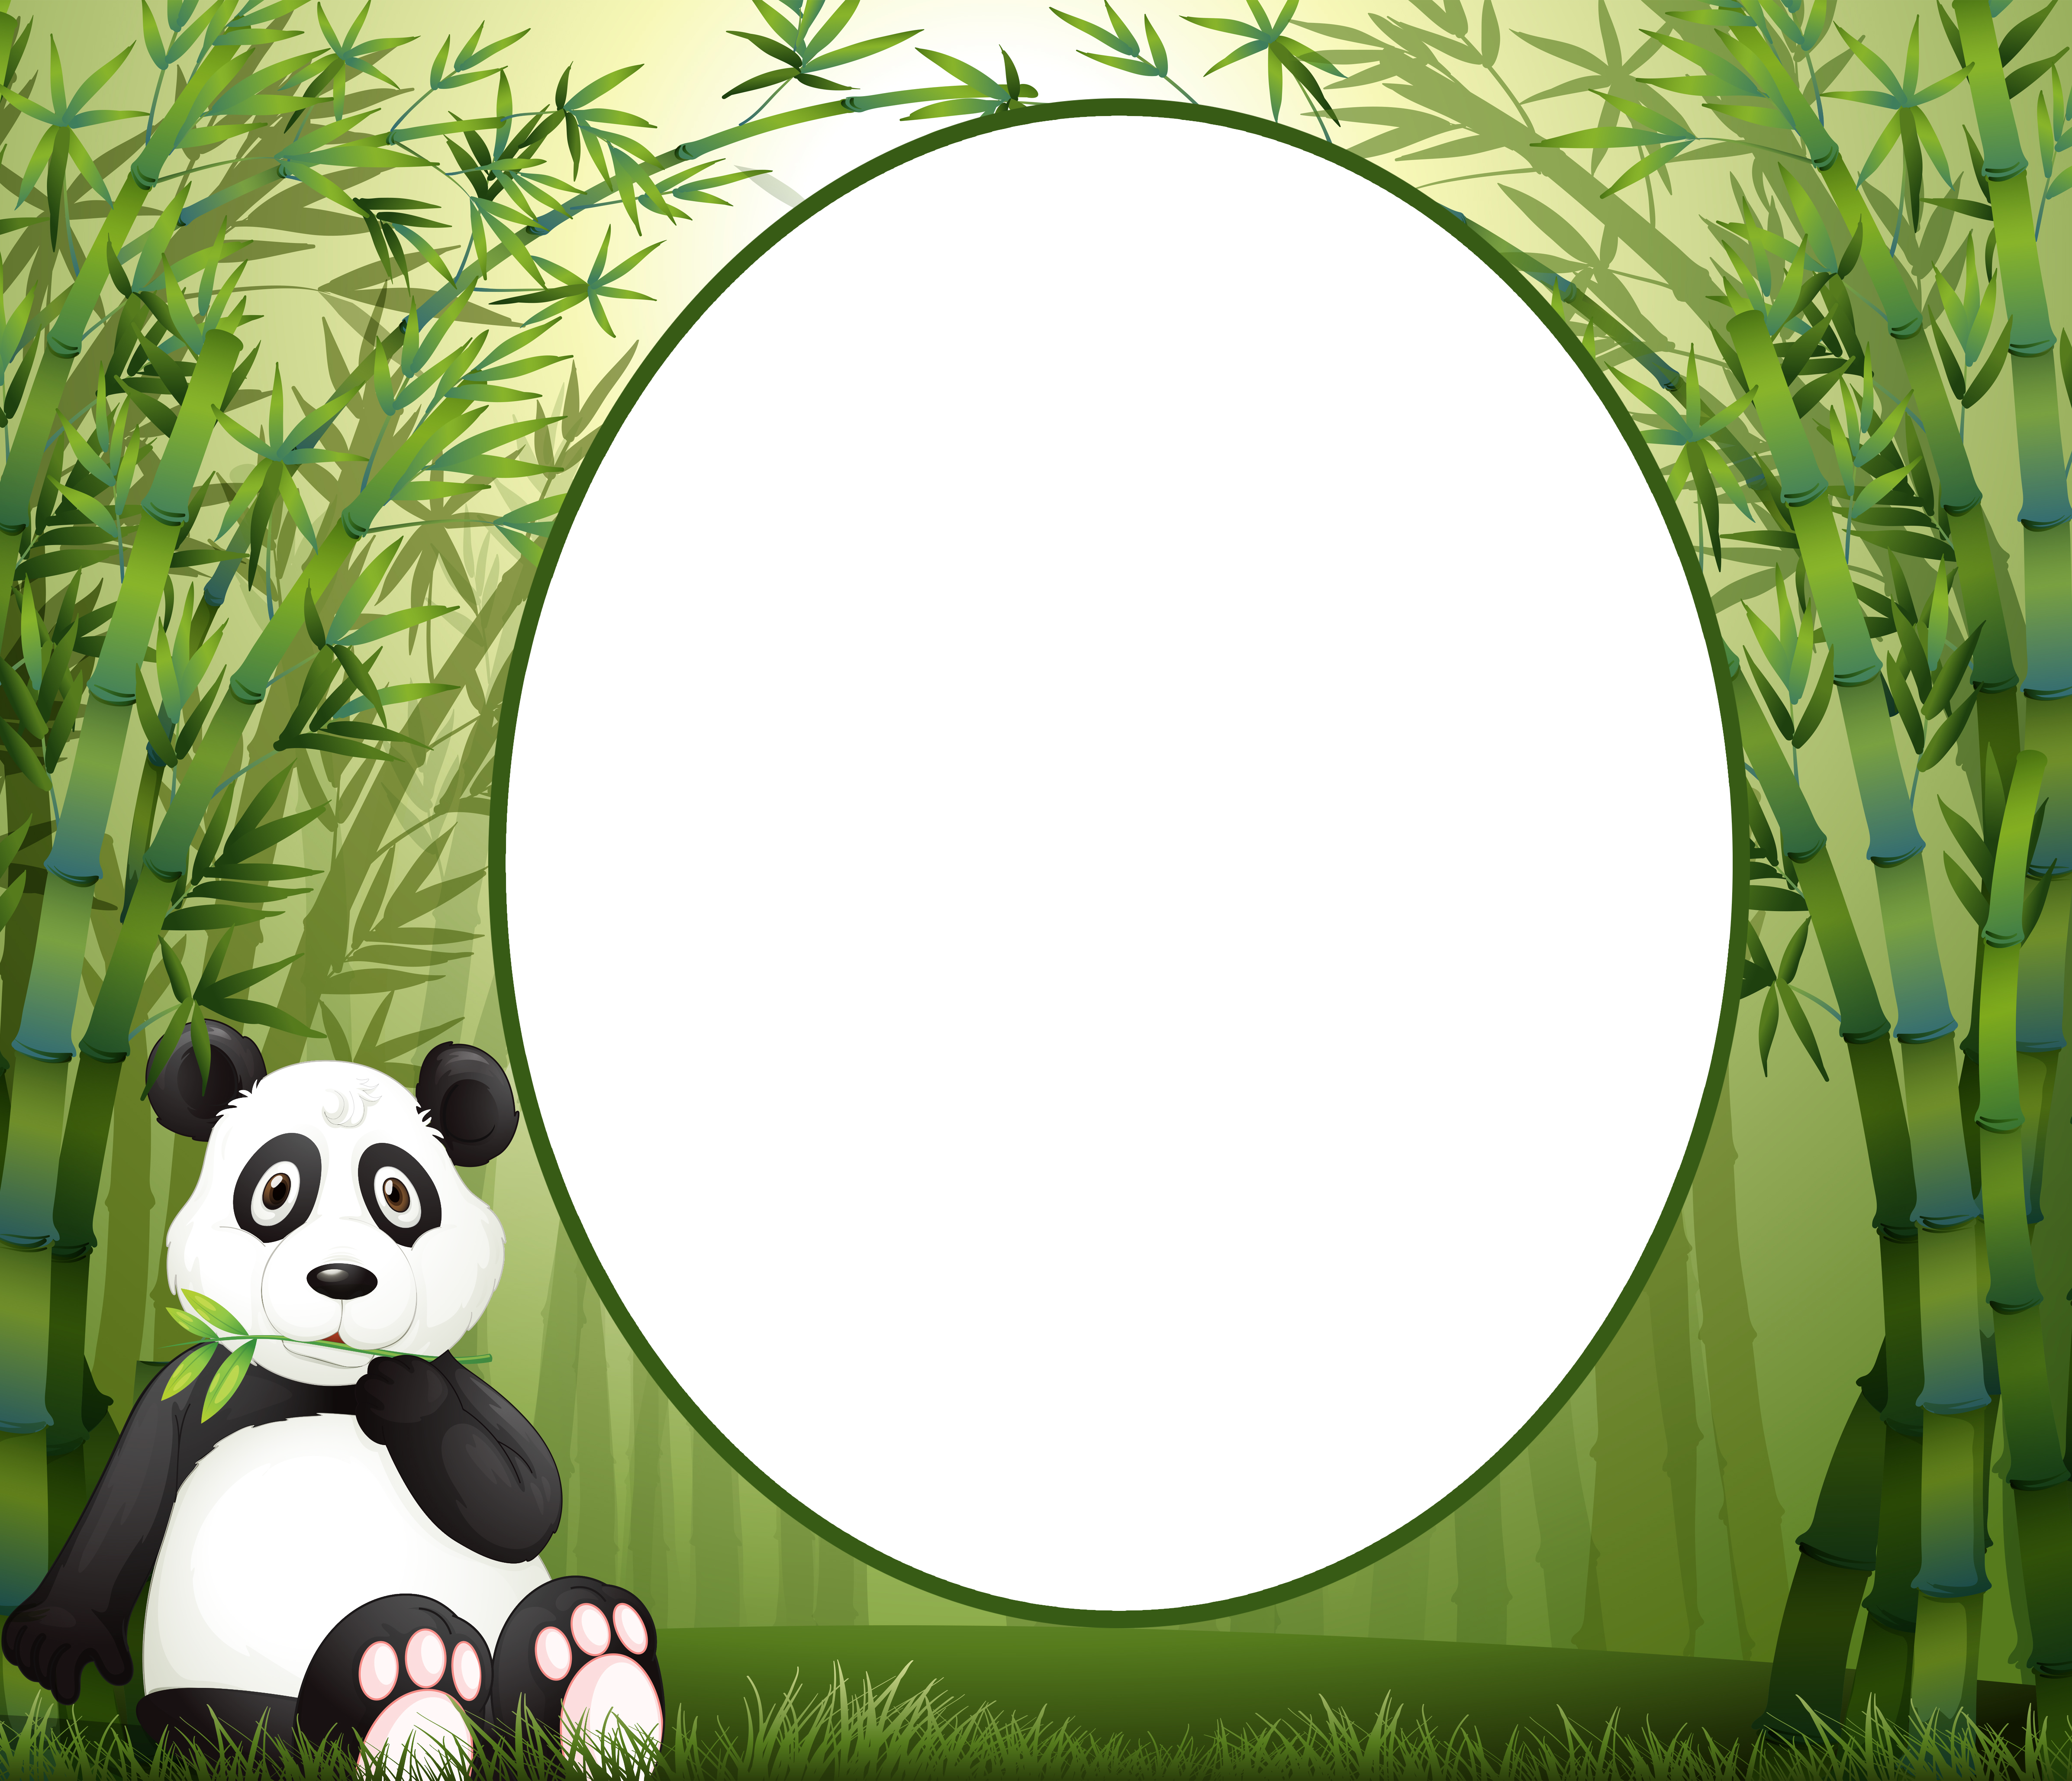 Child PNG Frame with Cute Panda | Gallery Yopriceville - High ...